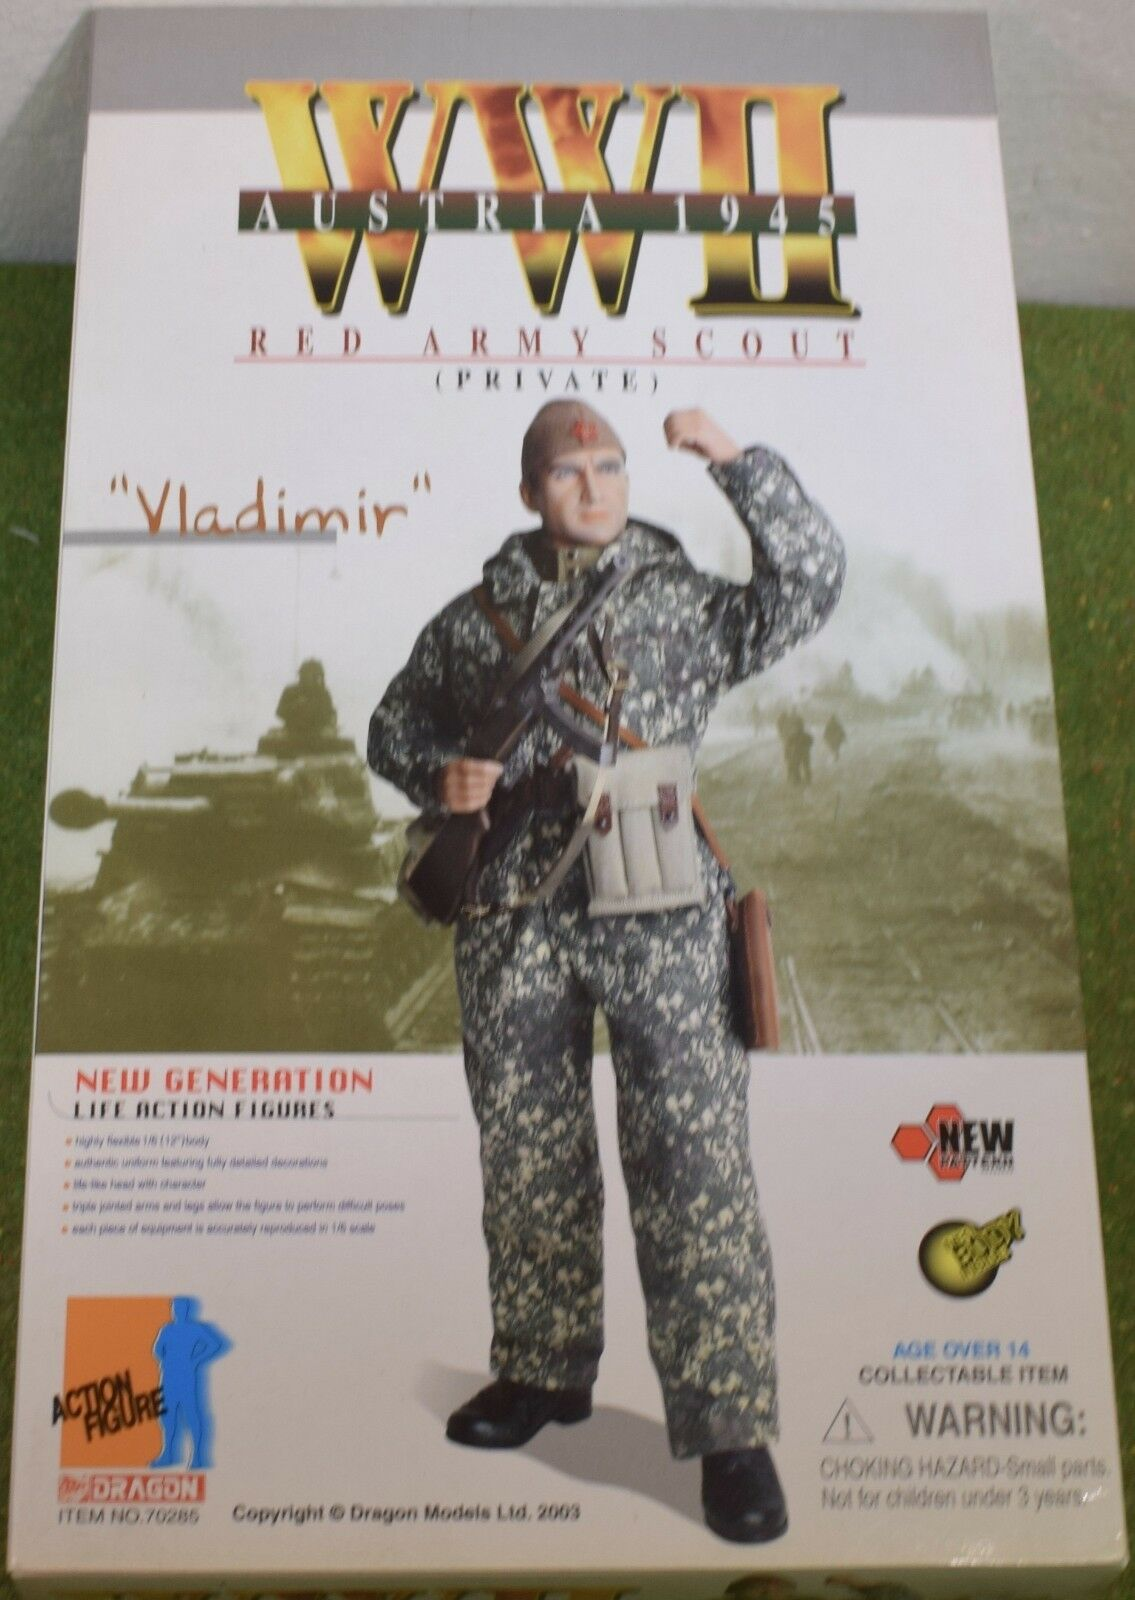 DRAGON 1 6 SCALE WORLD WAR II RUSSIAN VLADIMIR - RED ARMY SCOUT - PRIVATE